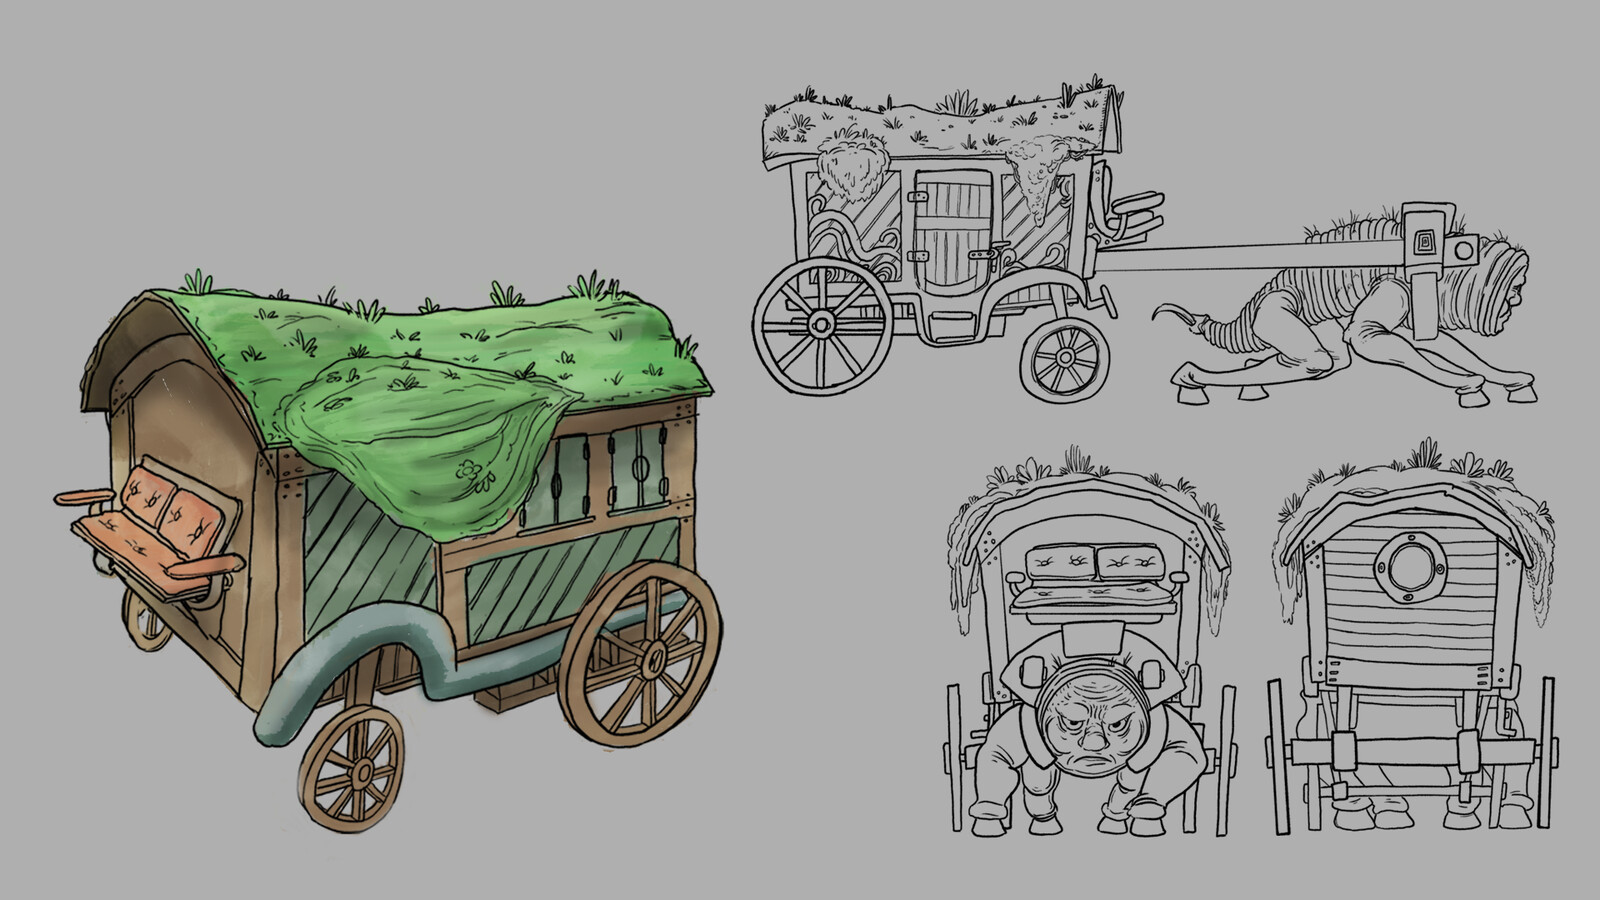 Vehicle that would be pulled by a flat faced variant of the antagonist creature and used by the protagonist character.